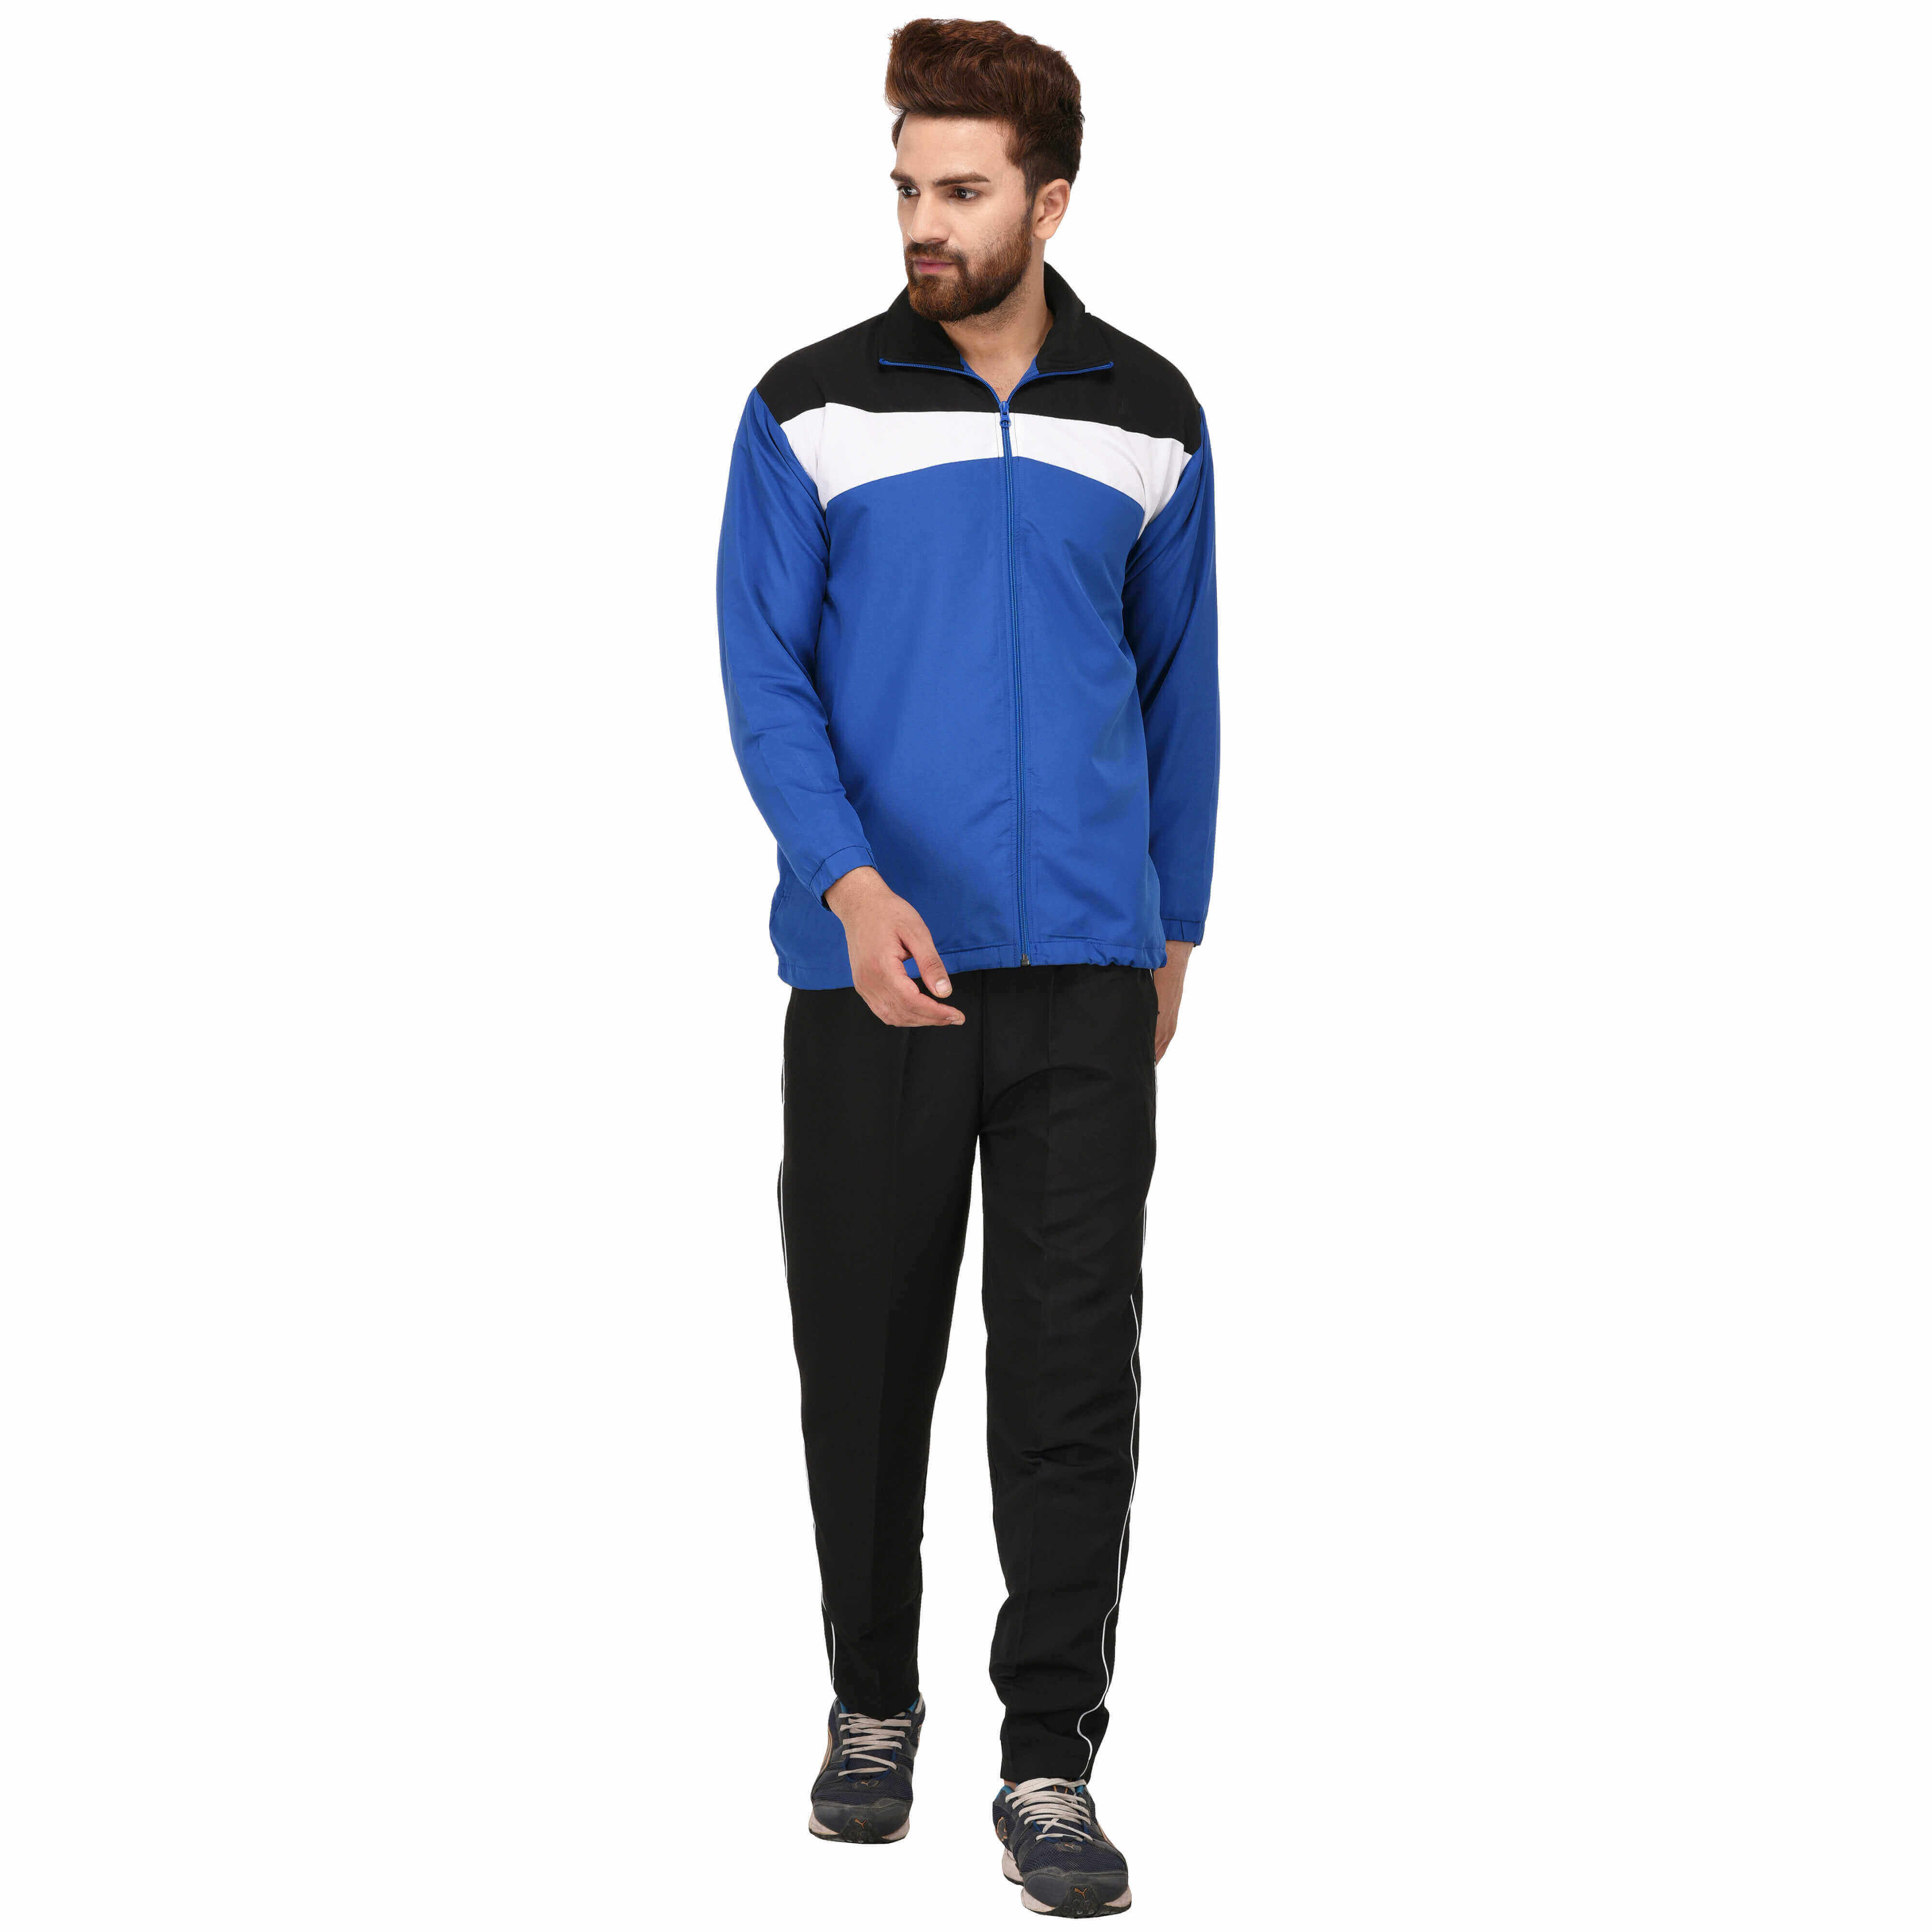 Mens Tracksuits Manufacturers in Peru